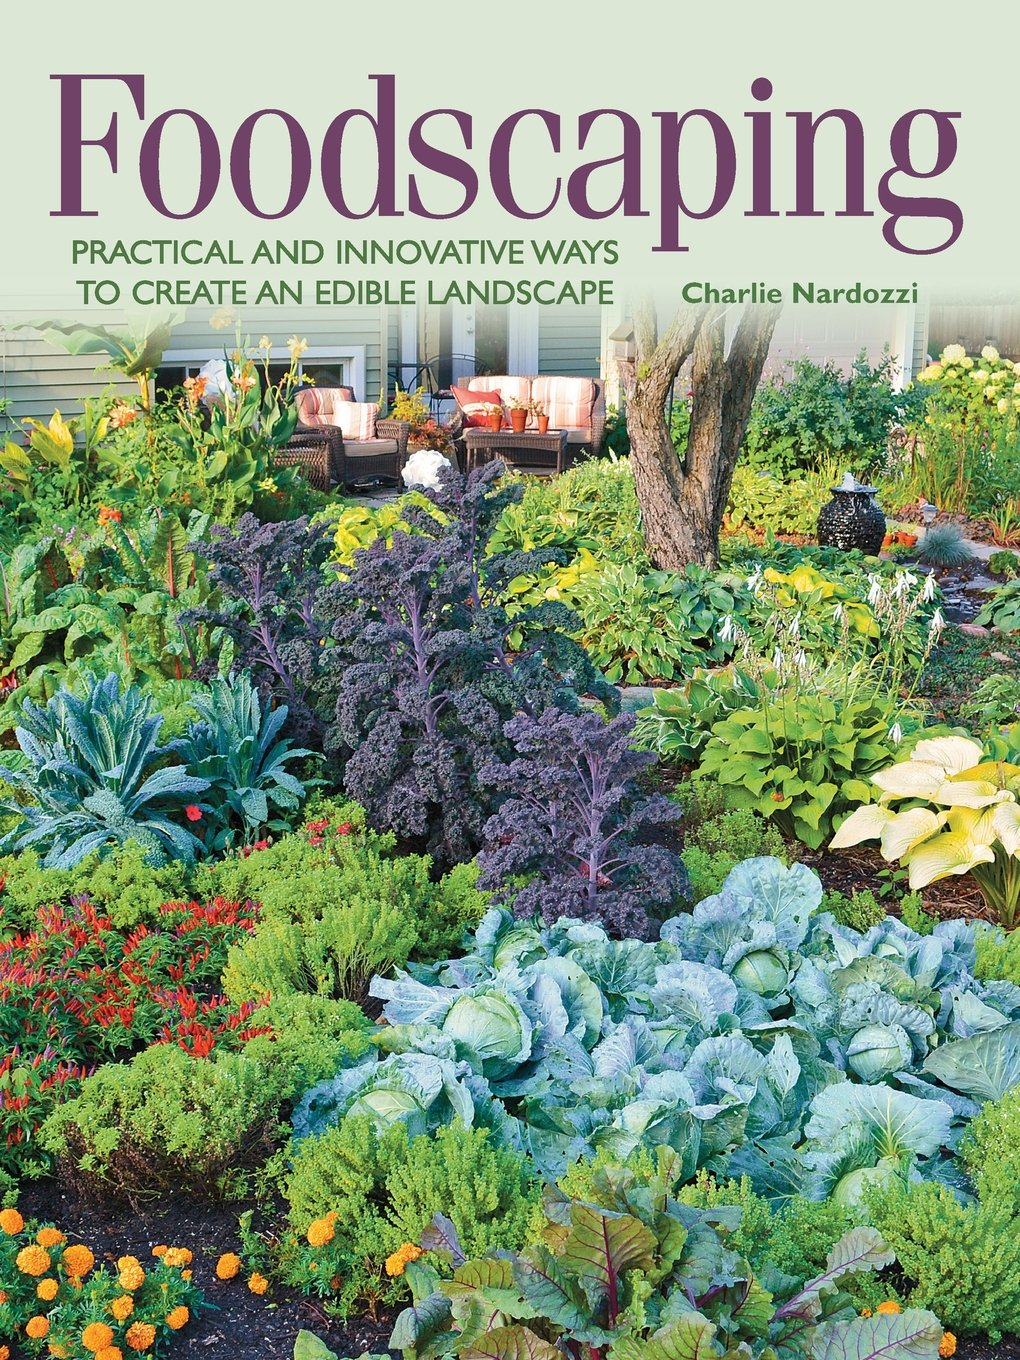 Creative environments landscape co edible gardens - Foodscaping Practical And Innovative Ways To Create An Edible Landscape Charlie Nardozzi 9781591866275 Amazon Com Books